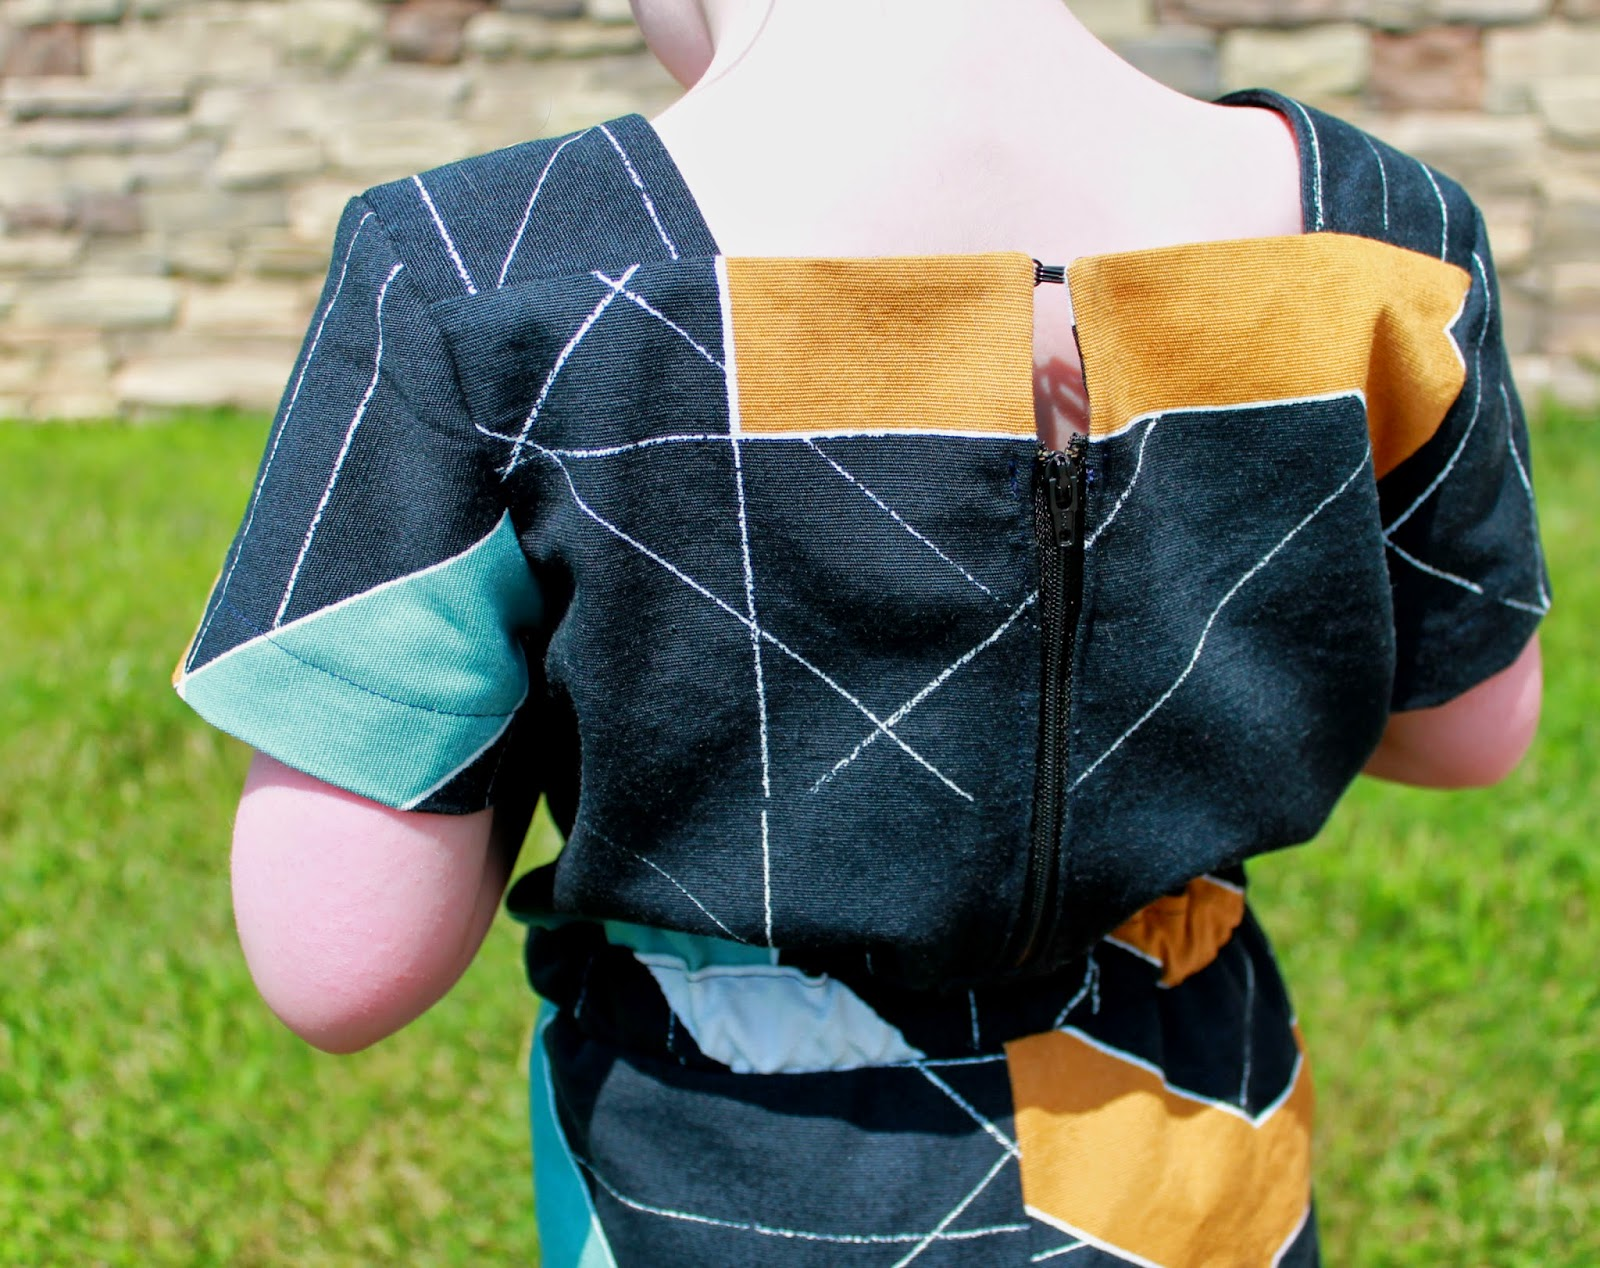 Oliver + S Croquet Dress + Puppet Show Shorts = Mash-Up Romper | The Inspired Wren